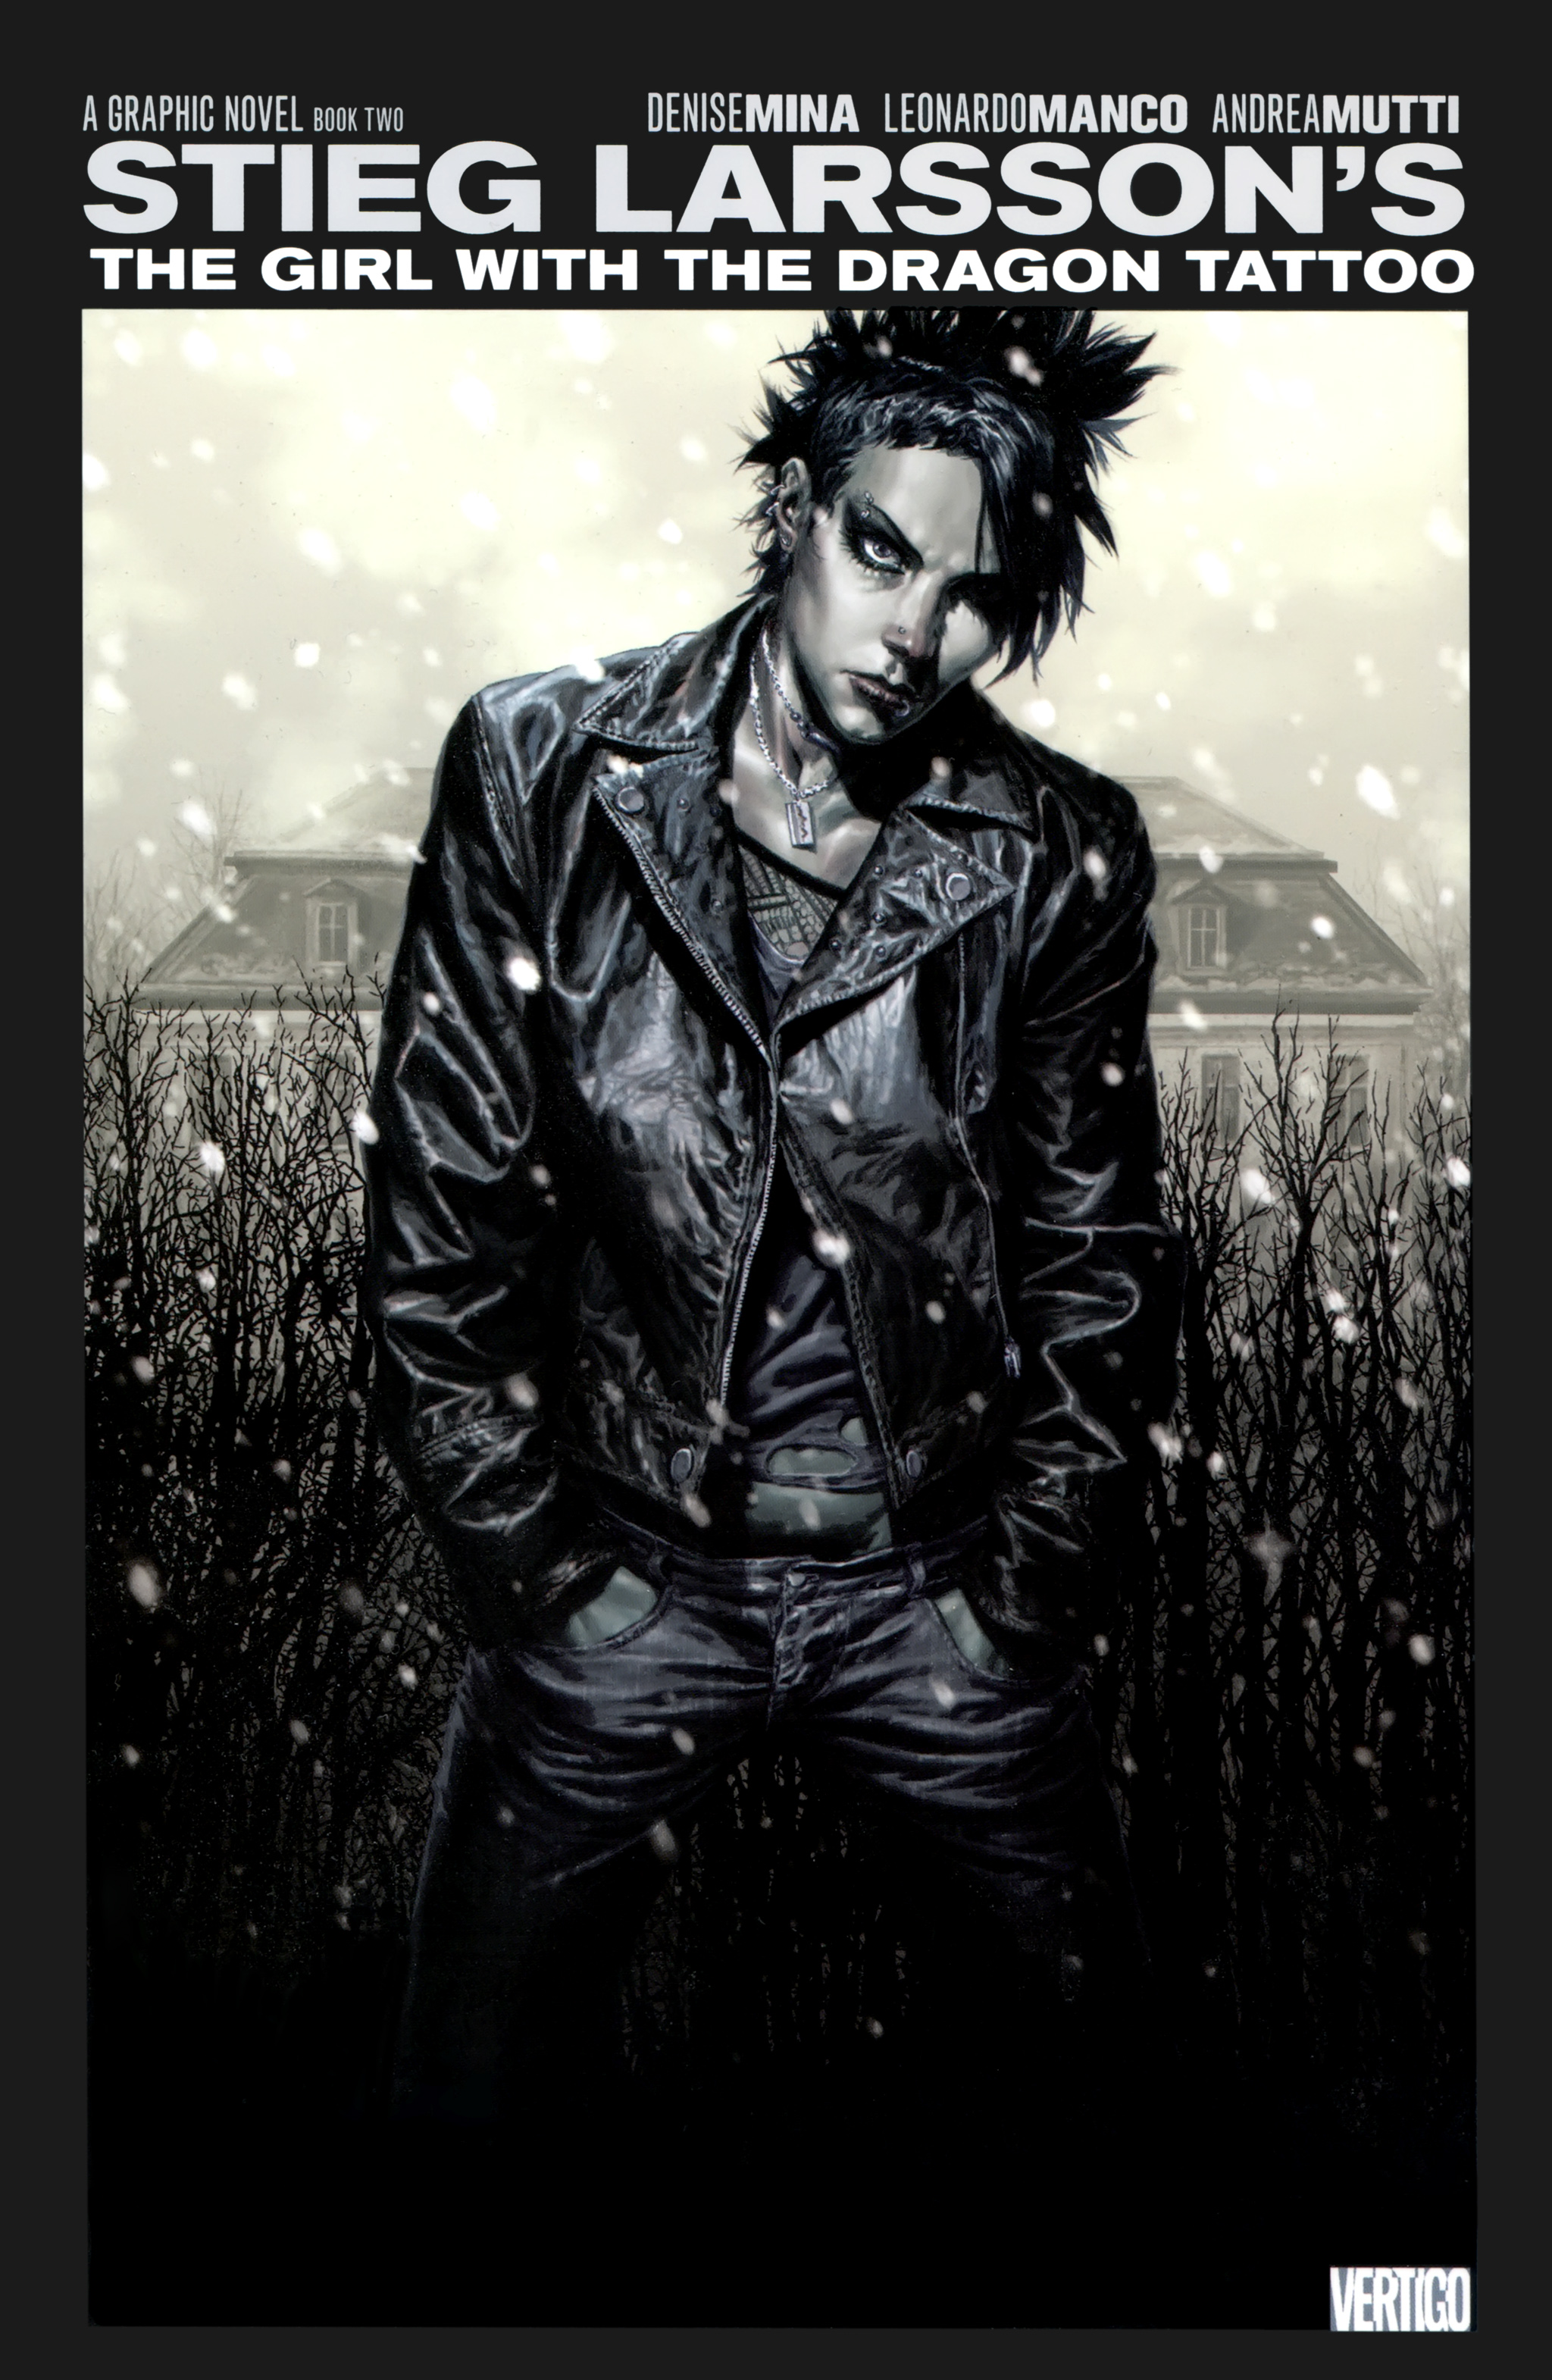 Read online The Girl With the Dragon Tattoo comic -  Issue # TPB 2 - 1